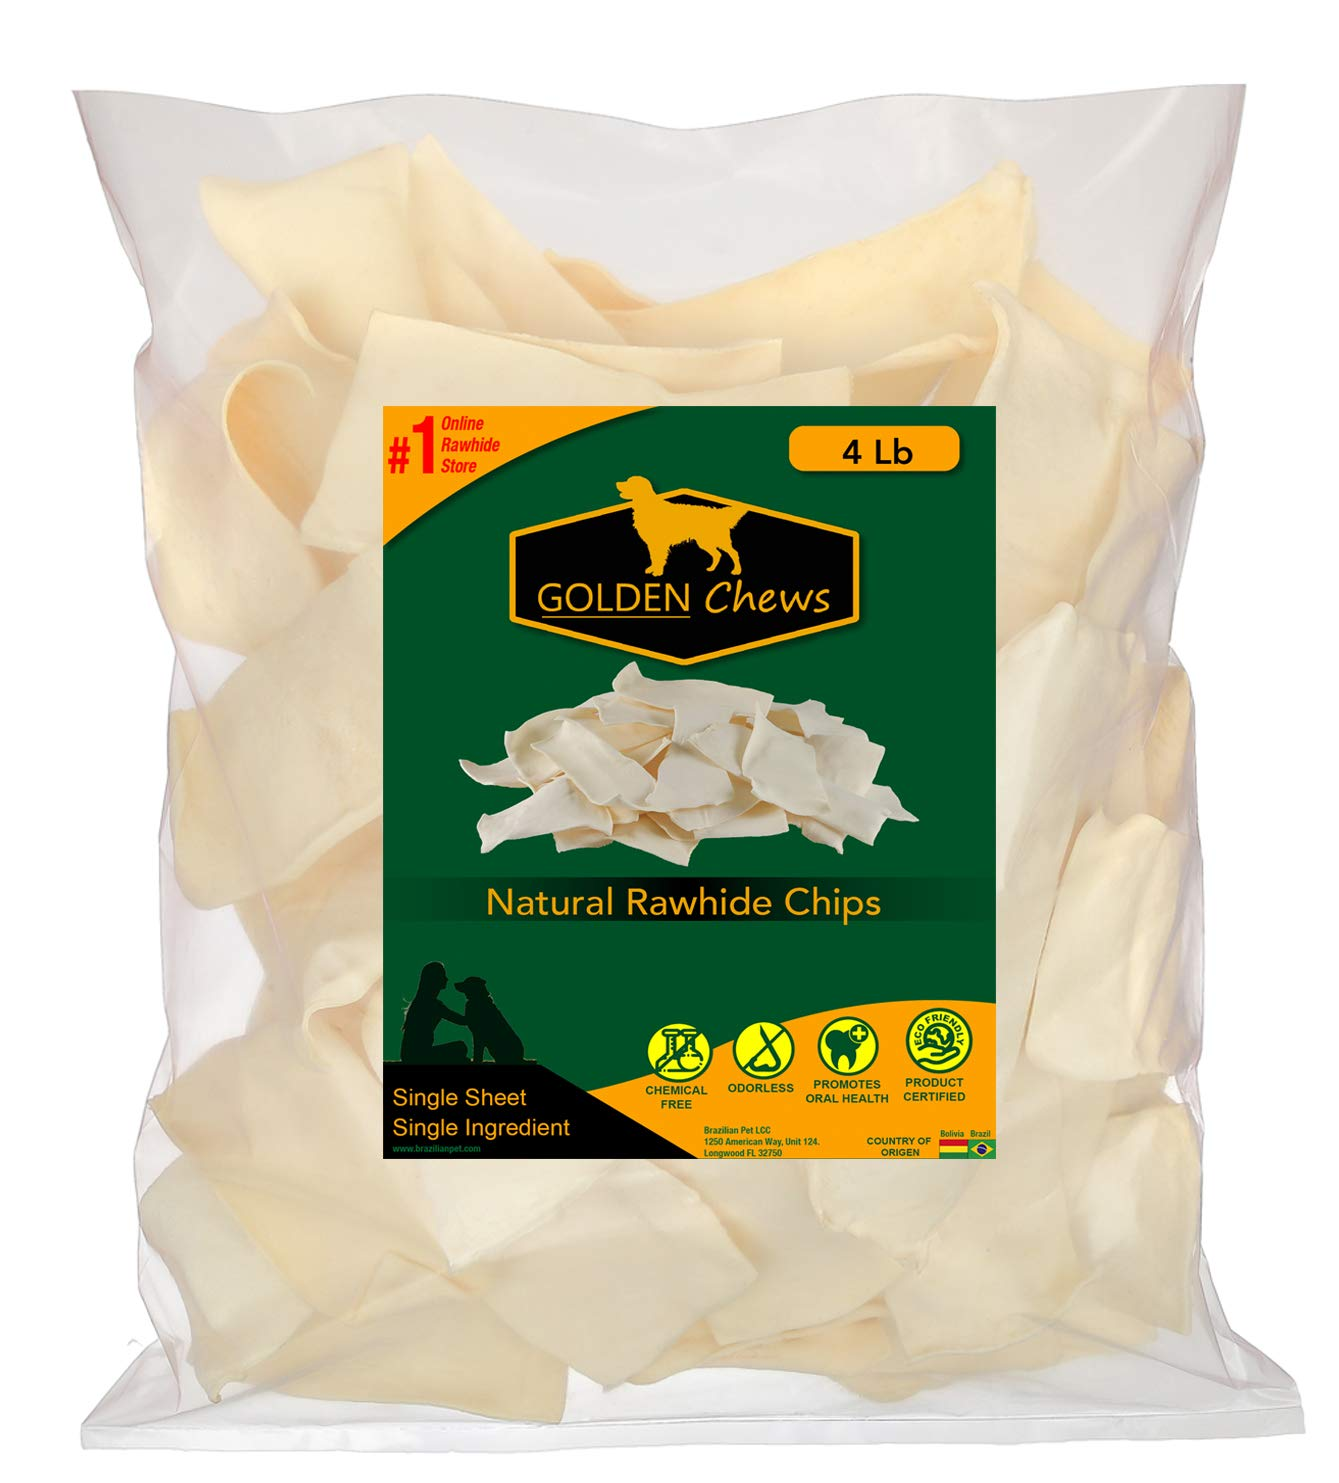 Golden Chews Natural Rawhide Chips - Premium Long-Lasting Dog Treats with Thick Cut Beef Hides (4 Pounds) by Golden Chews